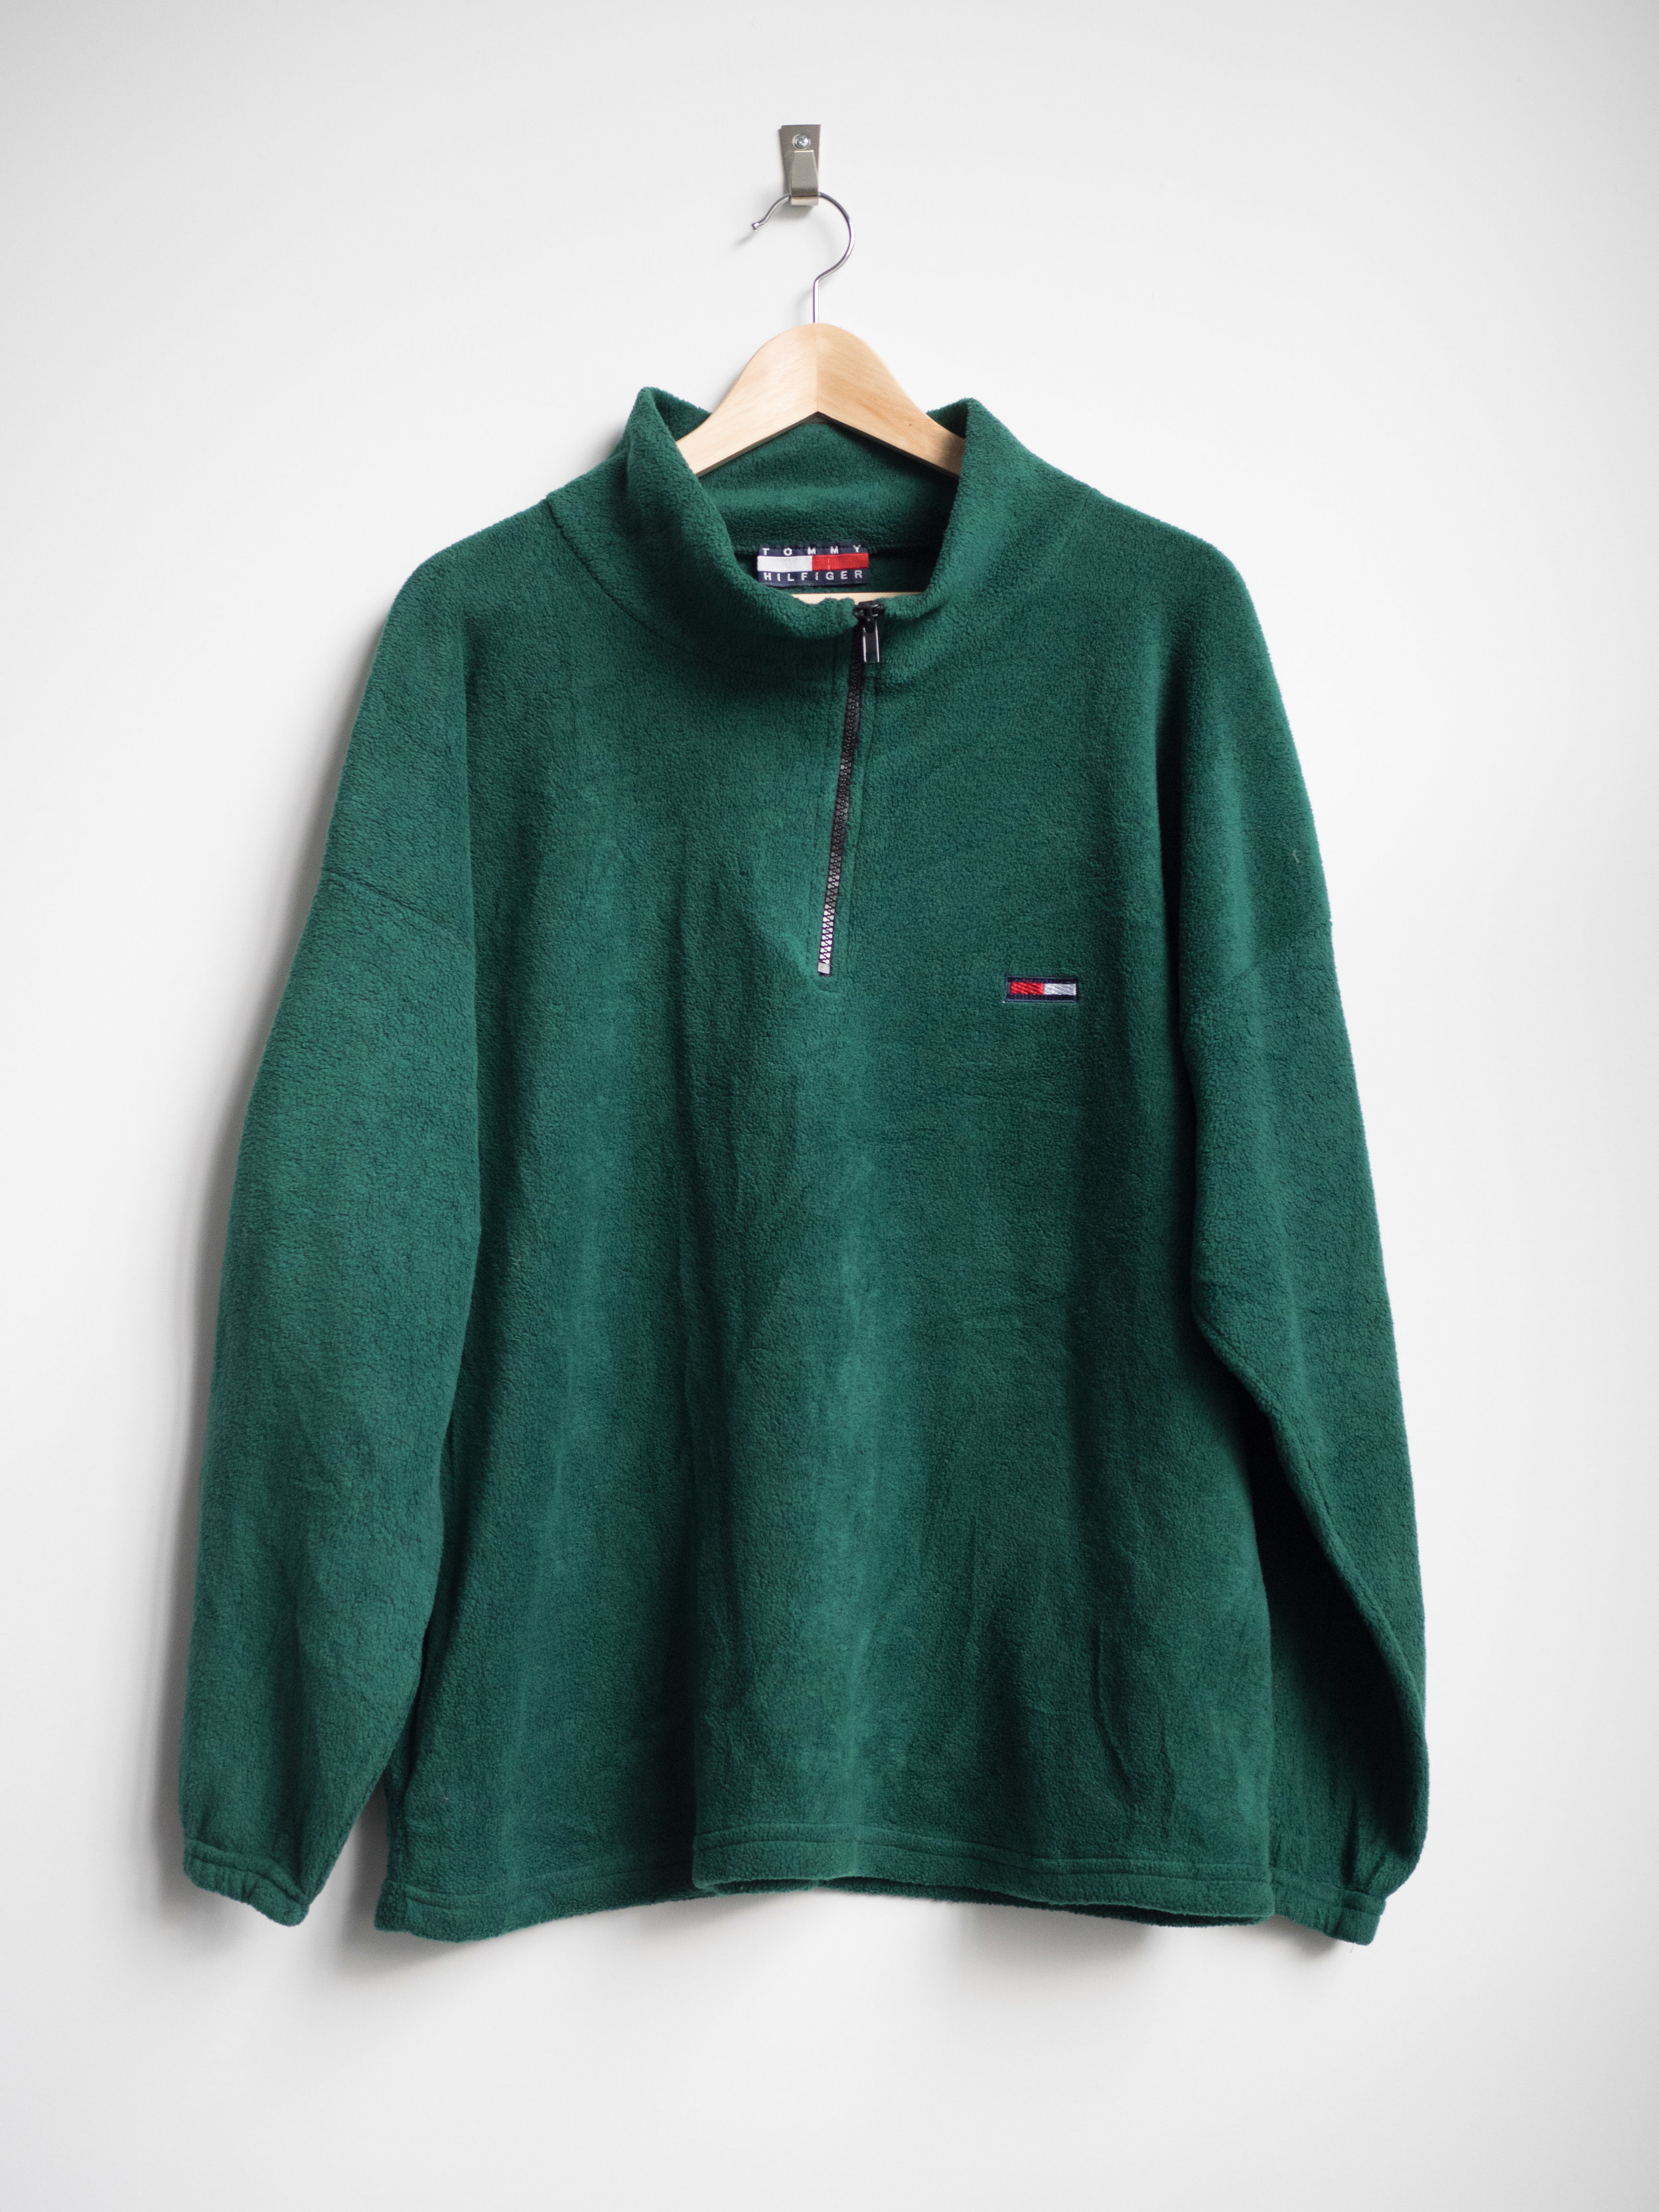 31bda6bd8 M (Unisex) - Vintage Tommy Hilfiger Fleece Pullover Sweater - Green — THE  CONSISTENCY PROJECT